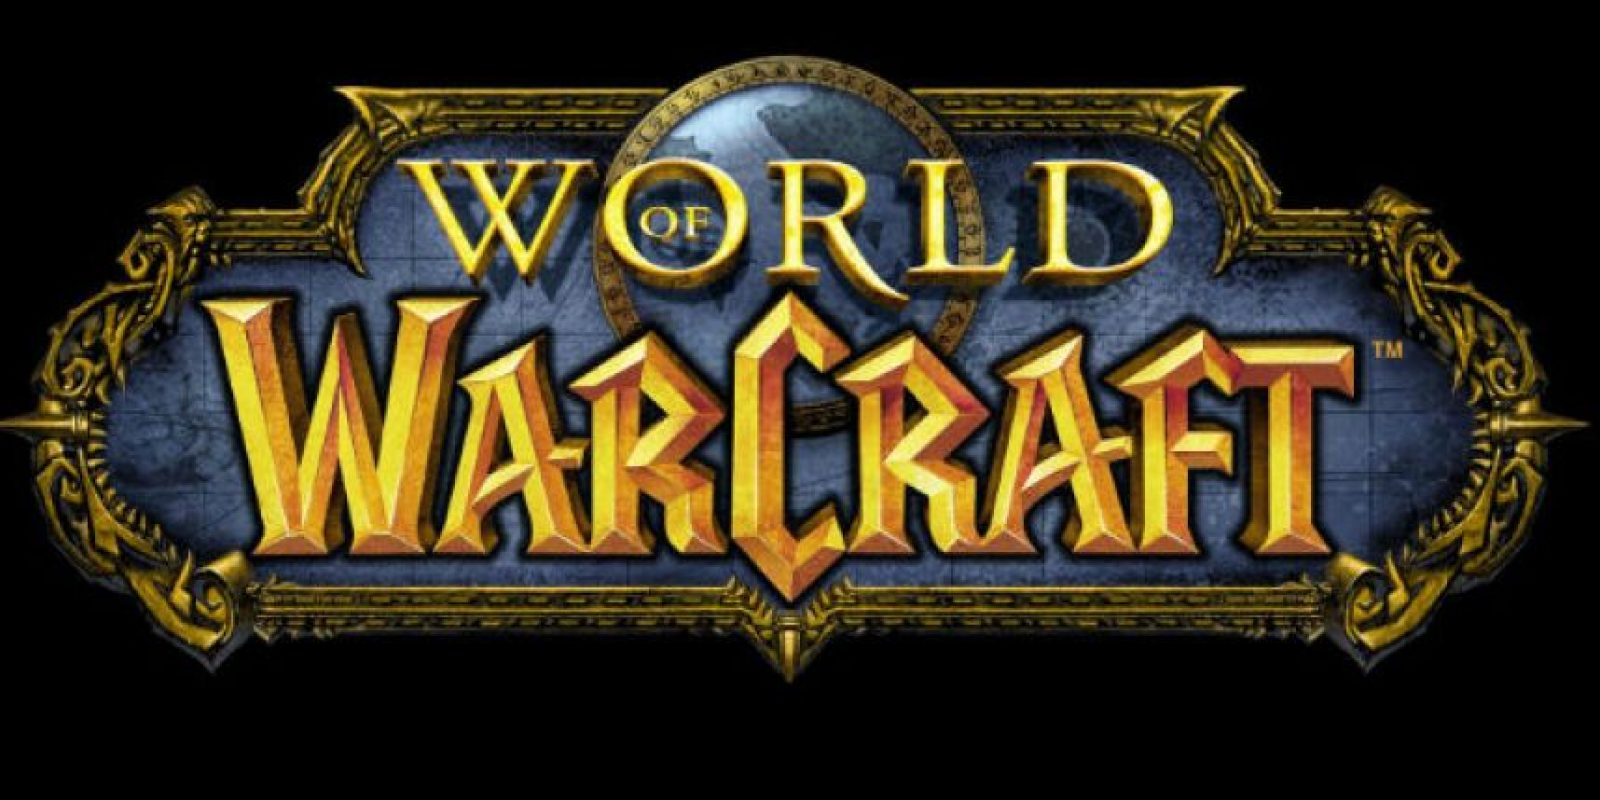 """World of Warcraft"" apareció originalmente en 2004. Foto: Blizzard Entertainment"